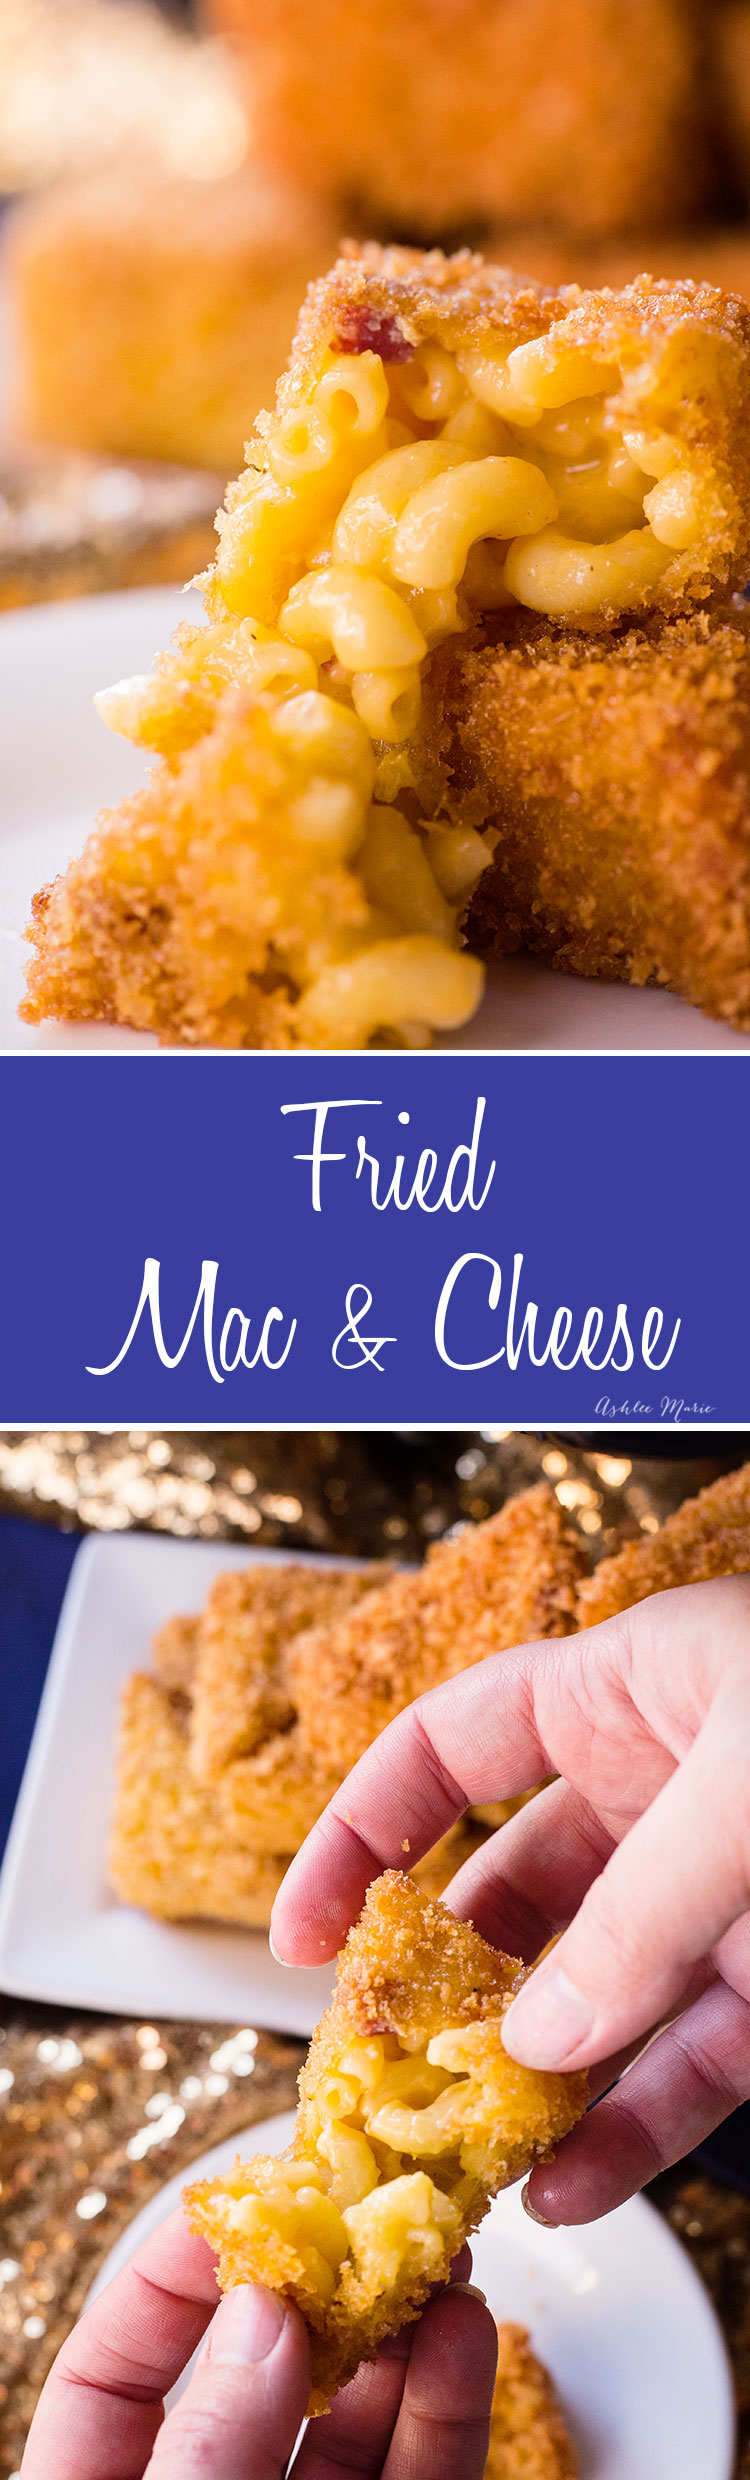 it's easy to make your own fried macaroni and cheese at home - it's an easy appetizer that everyone will love at your next party!